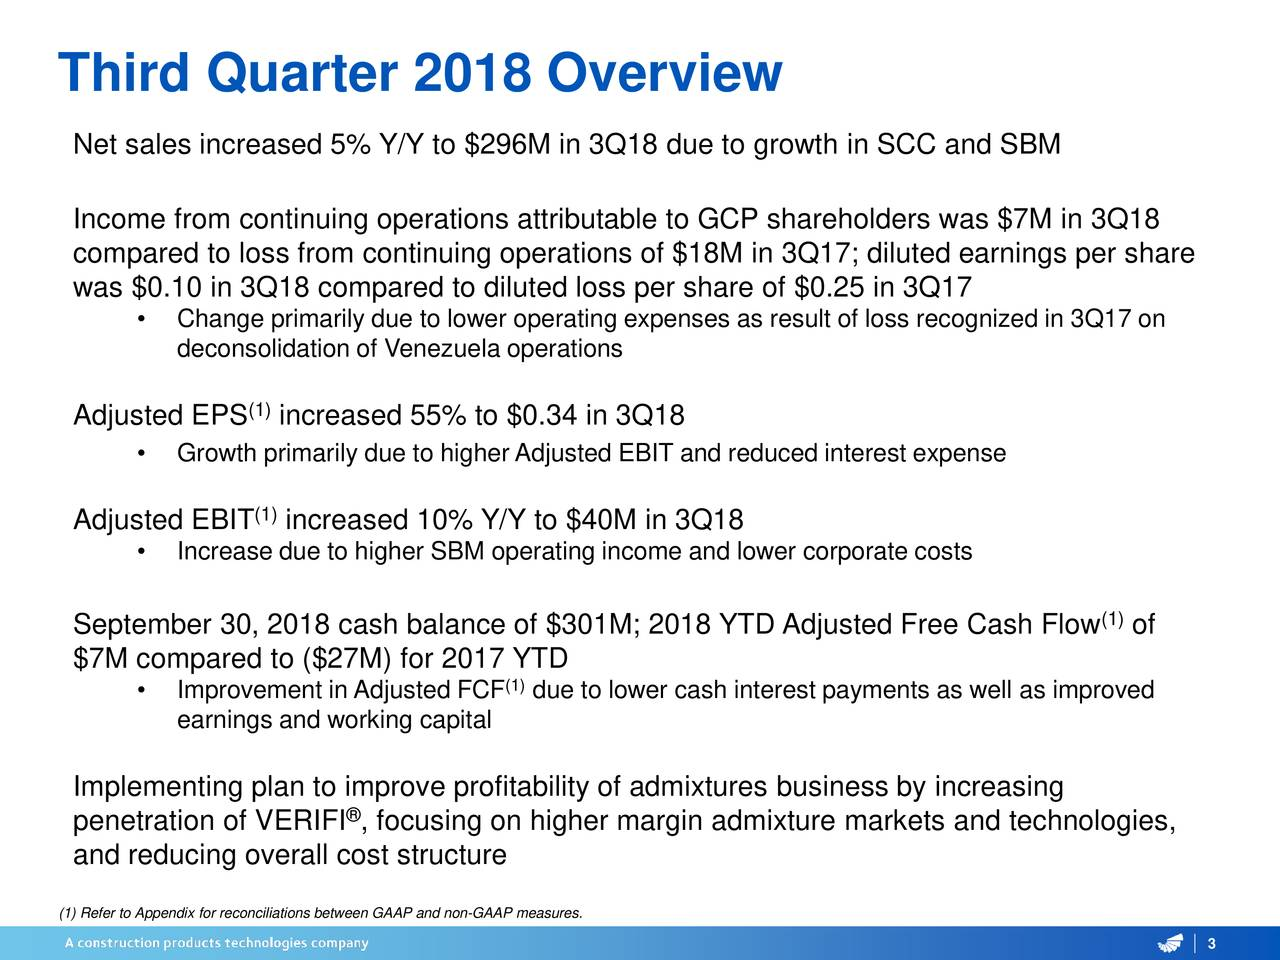 Net sales increased 5% Y/Y to $296M in 3Q18 due to growth in SCC and SBM Income from continuing operations attributable to GCP shareholders was $7M in 3Q18 compared to loss from continuing operations of $18M in 3Q17; diluted earnings per share was $0.10 in 3Q18 compared to diluted loss per share of $0.25 in 3Q17 • Change primarily due to lower operating expenses as result of loss recognized in 3Q17 on deconsolidation of Venezuela operations (1) Adjusted EPS increased 55% to $0.34 in 3Q18 • Growth primarily due to higher Adjusted EBIT and reduced interest expense Adjusted EBIT (1increased 10% Y/Y to $40M in 3Q18 • Increase due to higher SBM operating income and lower corporate costs September 30, 2018 cash balance of $301M; 2018 YTD Adjusted Free Cash Flow (1)of $7M compared to ($27M) for 2017 YTD (1) • Improvement in Adjusted FCF due to lower cash interest paymentsas well as improved earnings and working capital Implementing plan to improve profitability of admixtures business by increasing penetration of VERIFI , focusing on higher margin admixture markets and technologies, and reducing overall cost structure (1) Refer to Appendix for reconciliations between GAAP and non-GAAP measures.